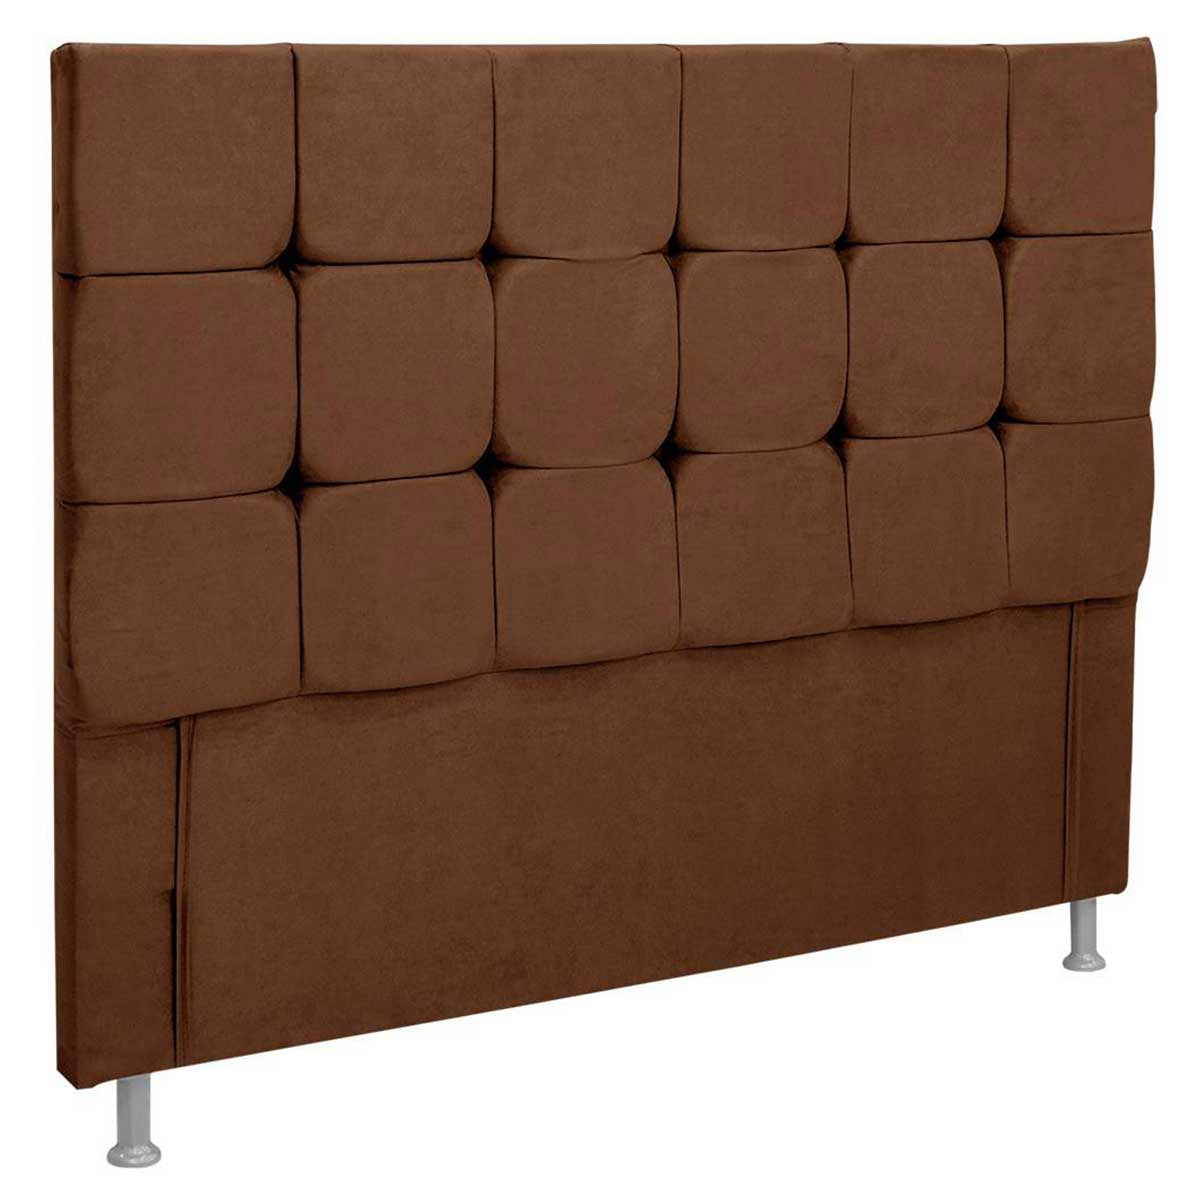 Cabeceira Slim Casal 140 cm Animale Chocolate Simbal